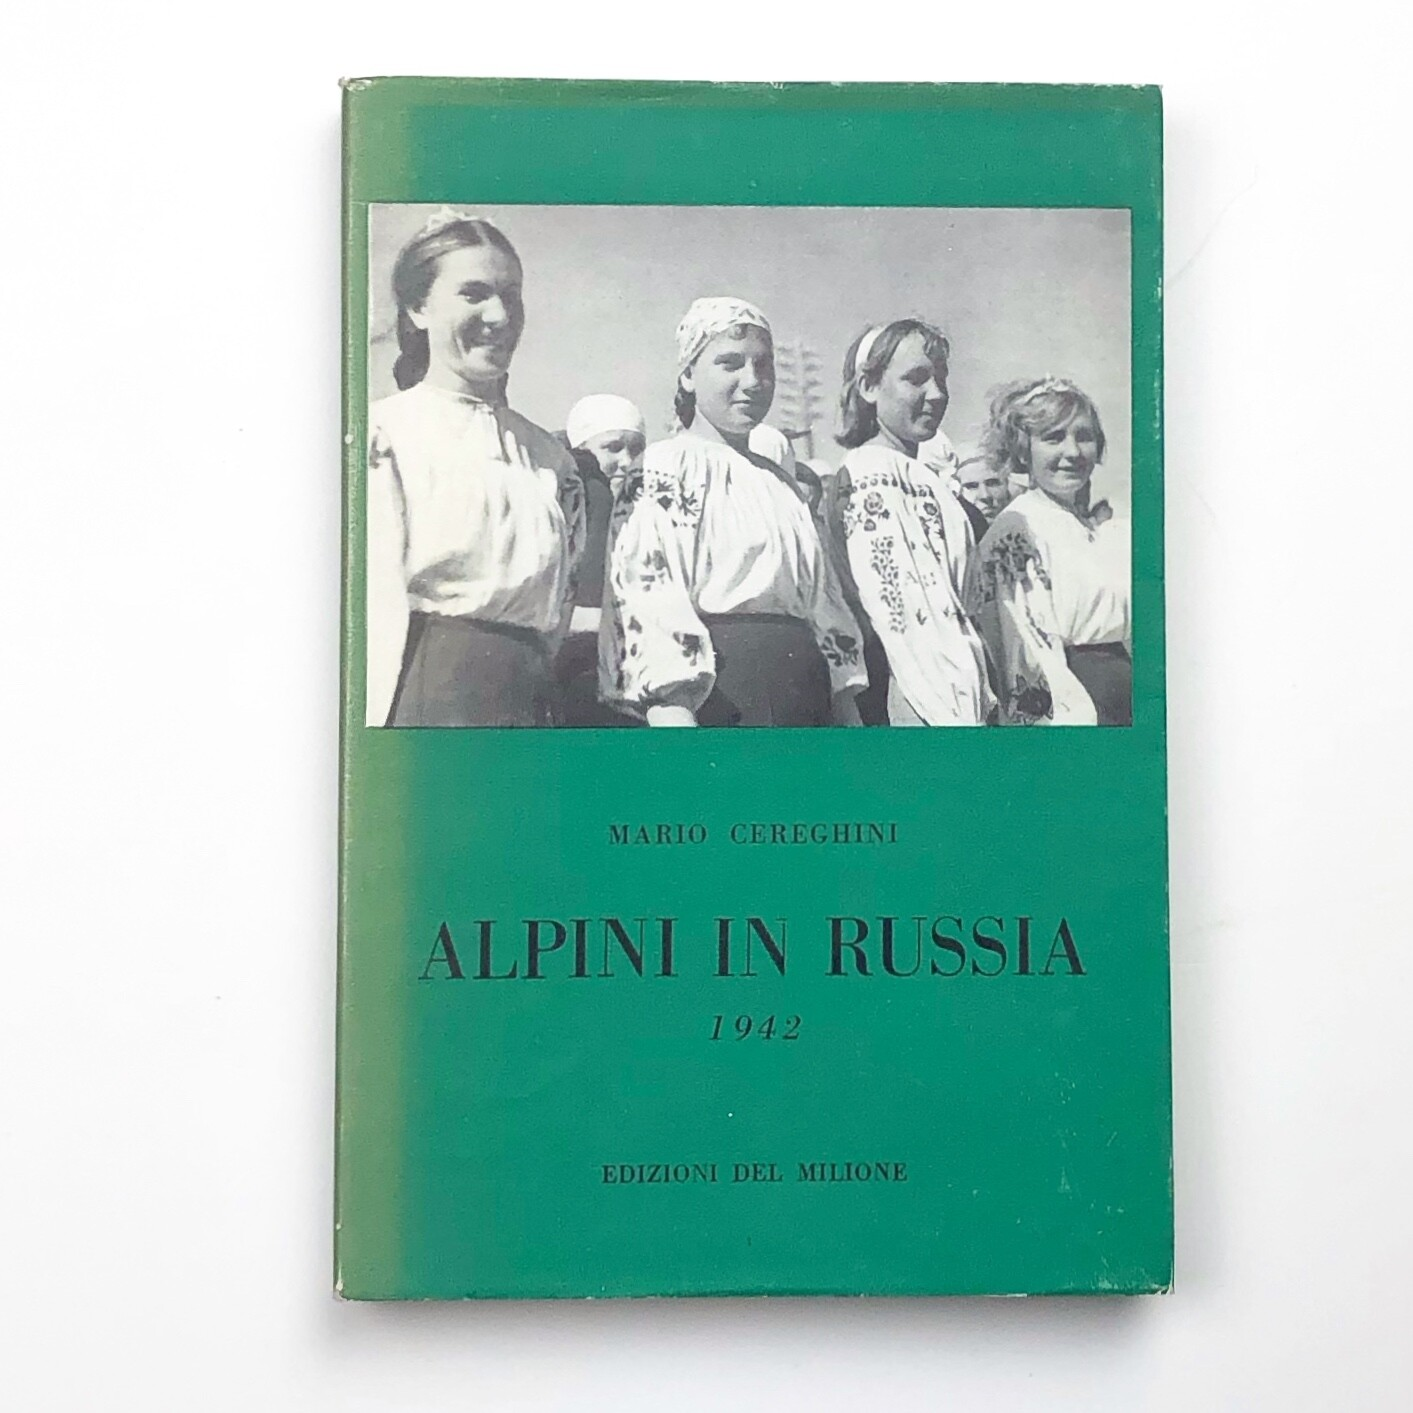 Alpine troops in Russia by Mario Cereghini